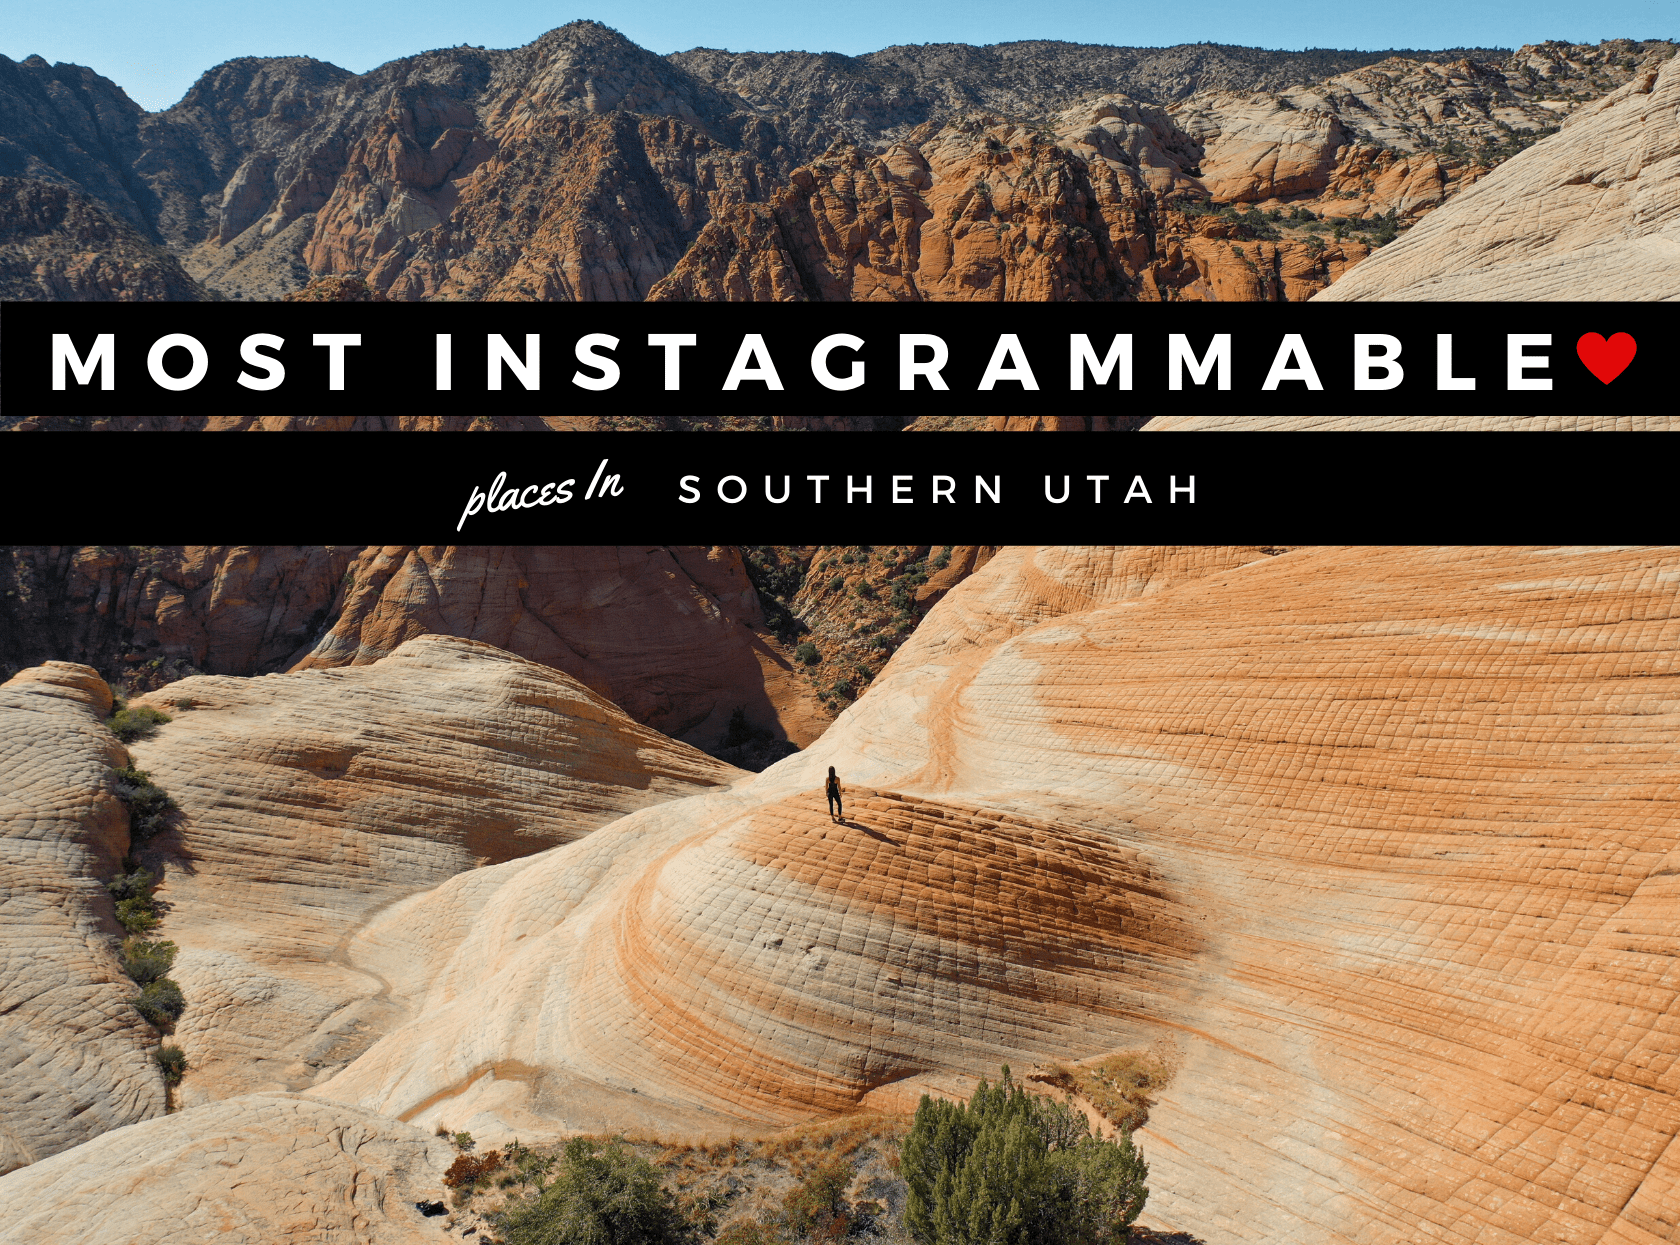 Most instagrammable places in southern utah